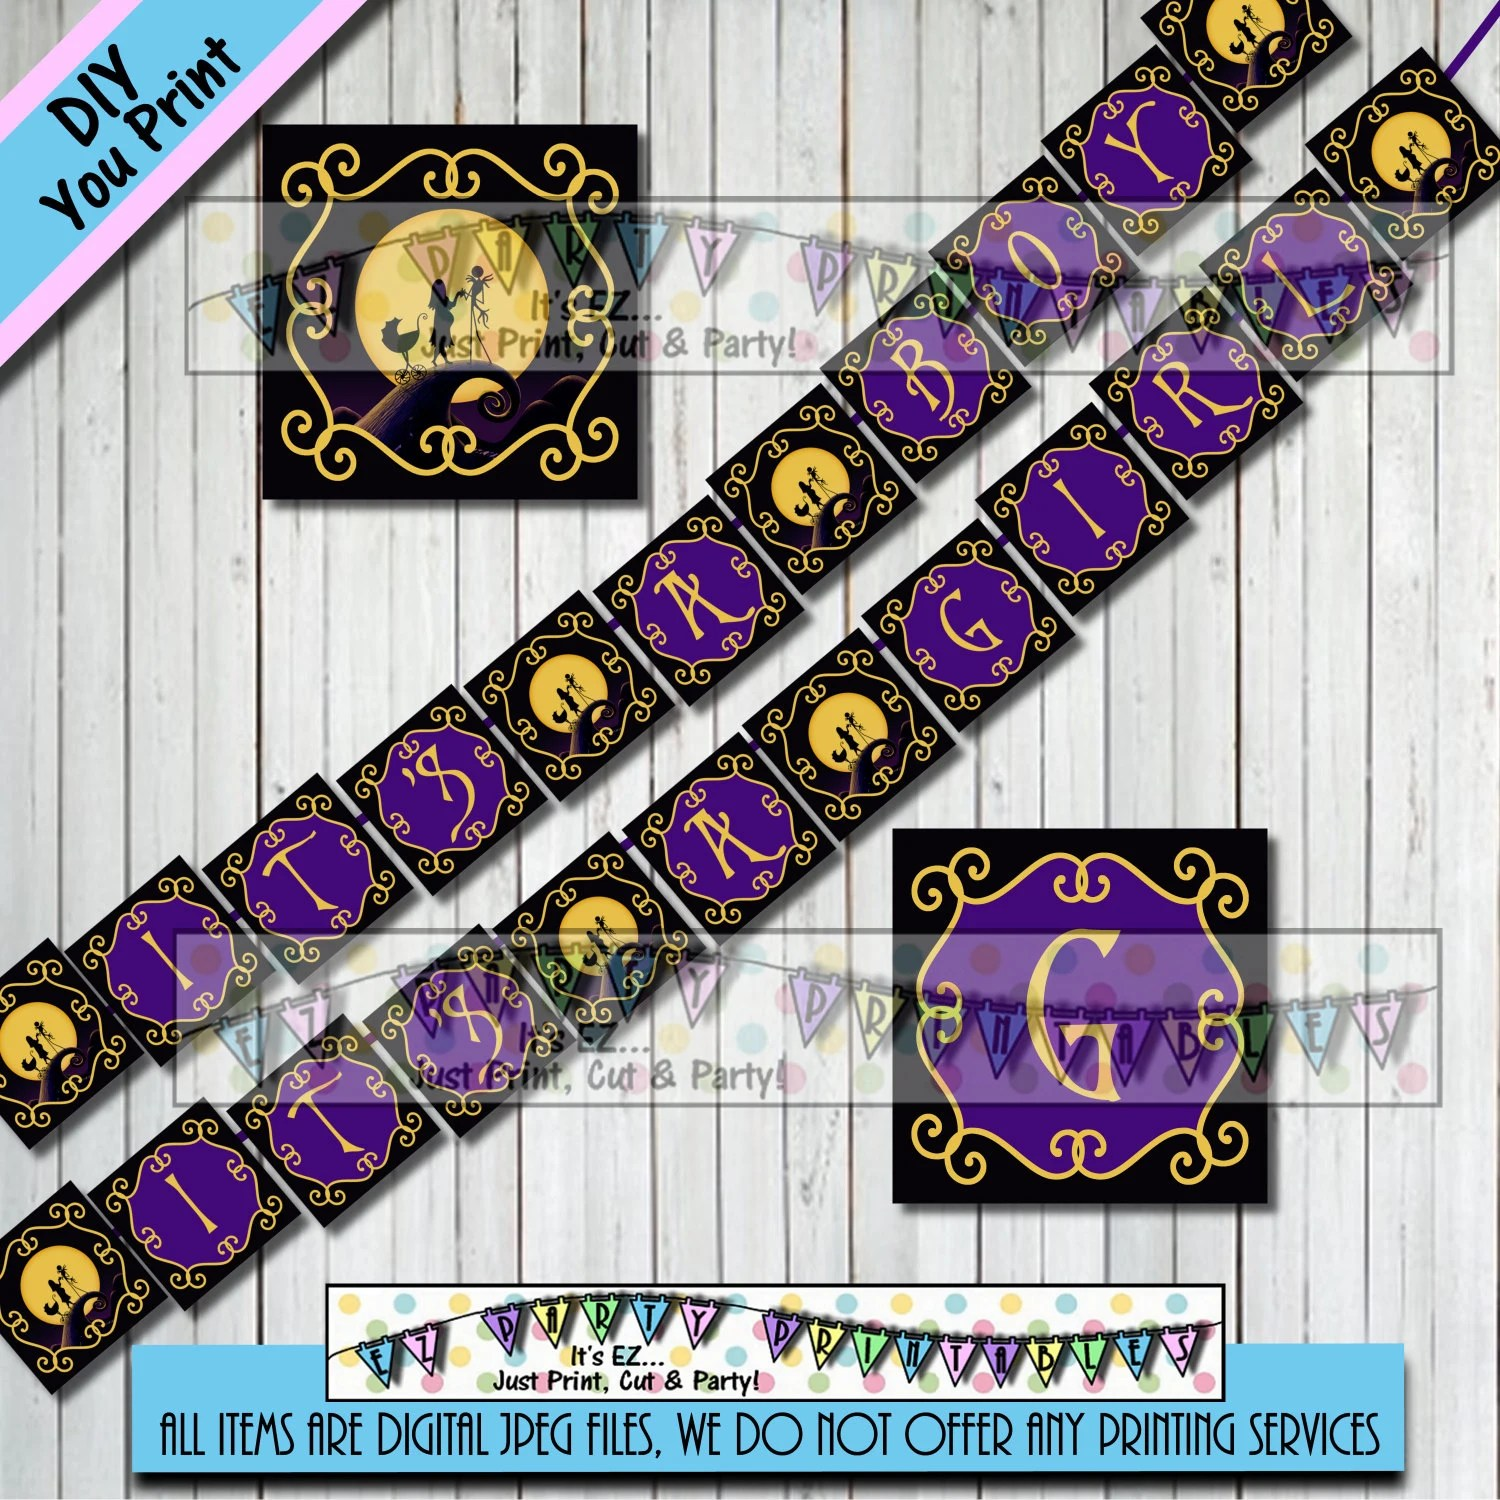 BABY SHOWER BANNER Nightmare before Christmas Itu0027s a Girl - nightmare before christmas baby shower decorations